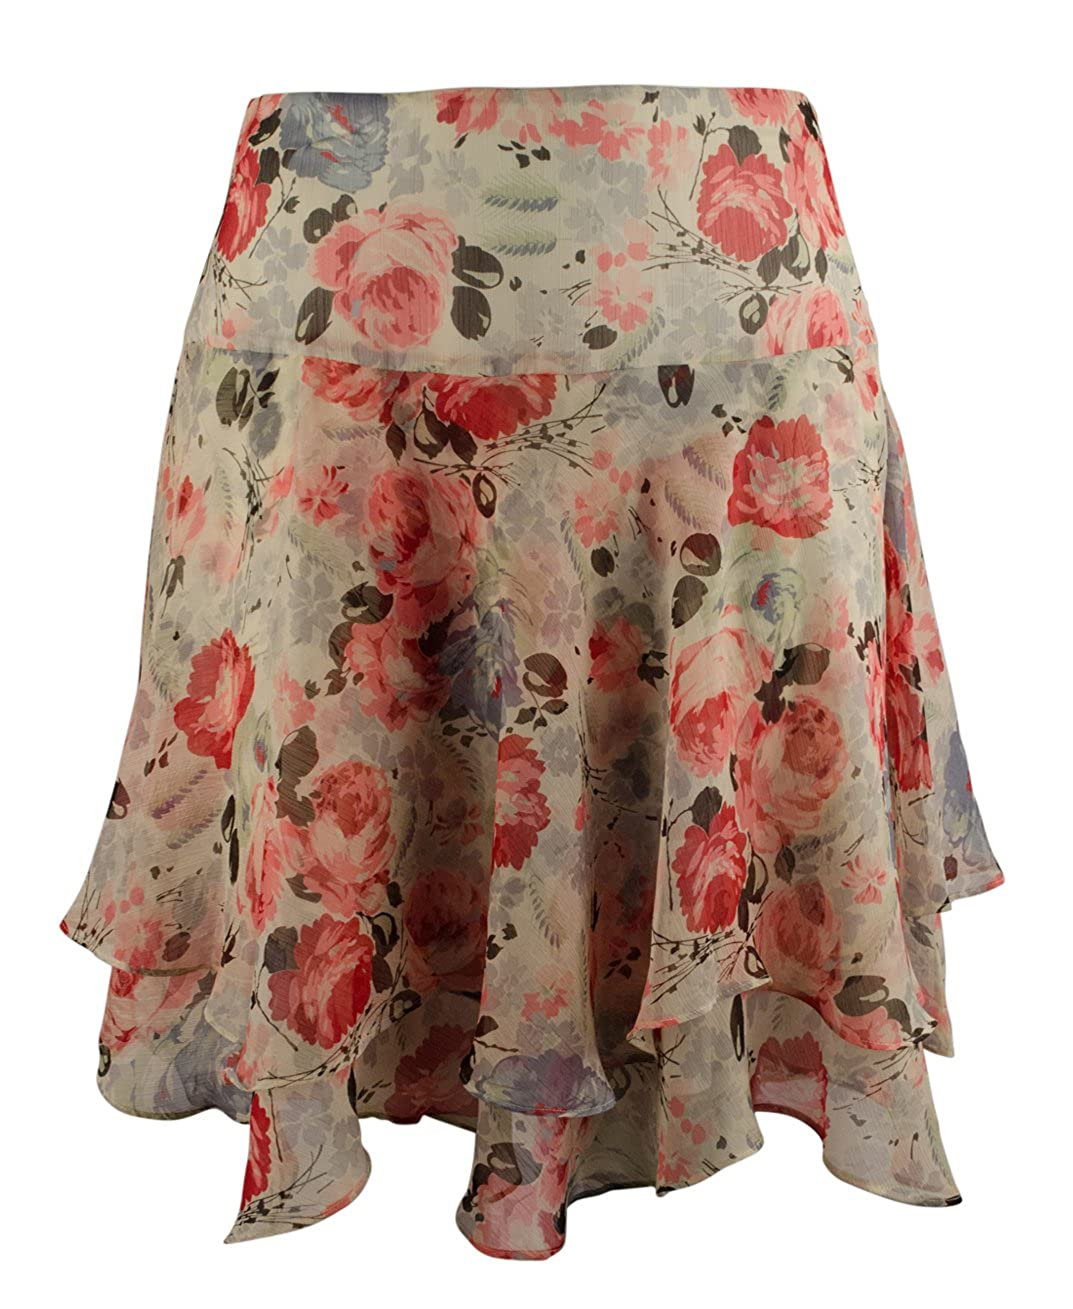 Lauren Ralph Lauren Women's Plus Size Floral Print Tiered Skirt